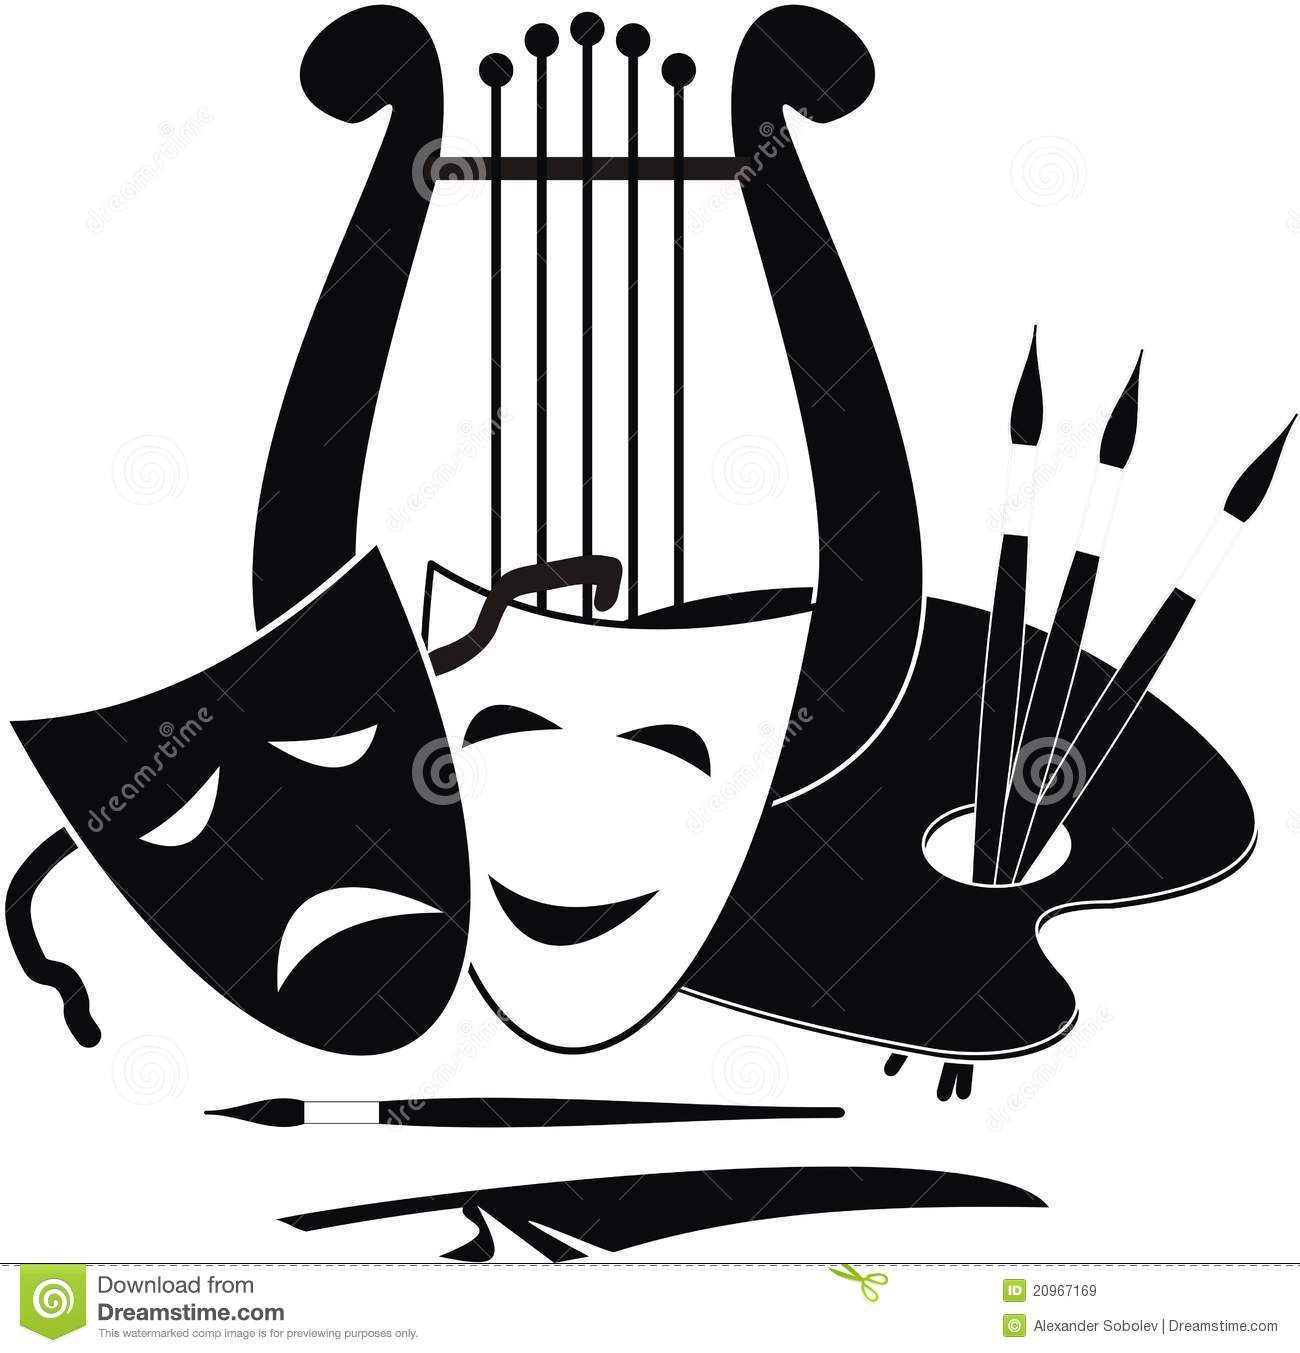 Artistic Symbols: Symbols Of Arts, Music. And Theater Stock Vector